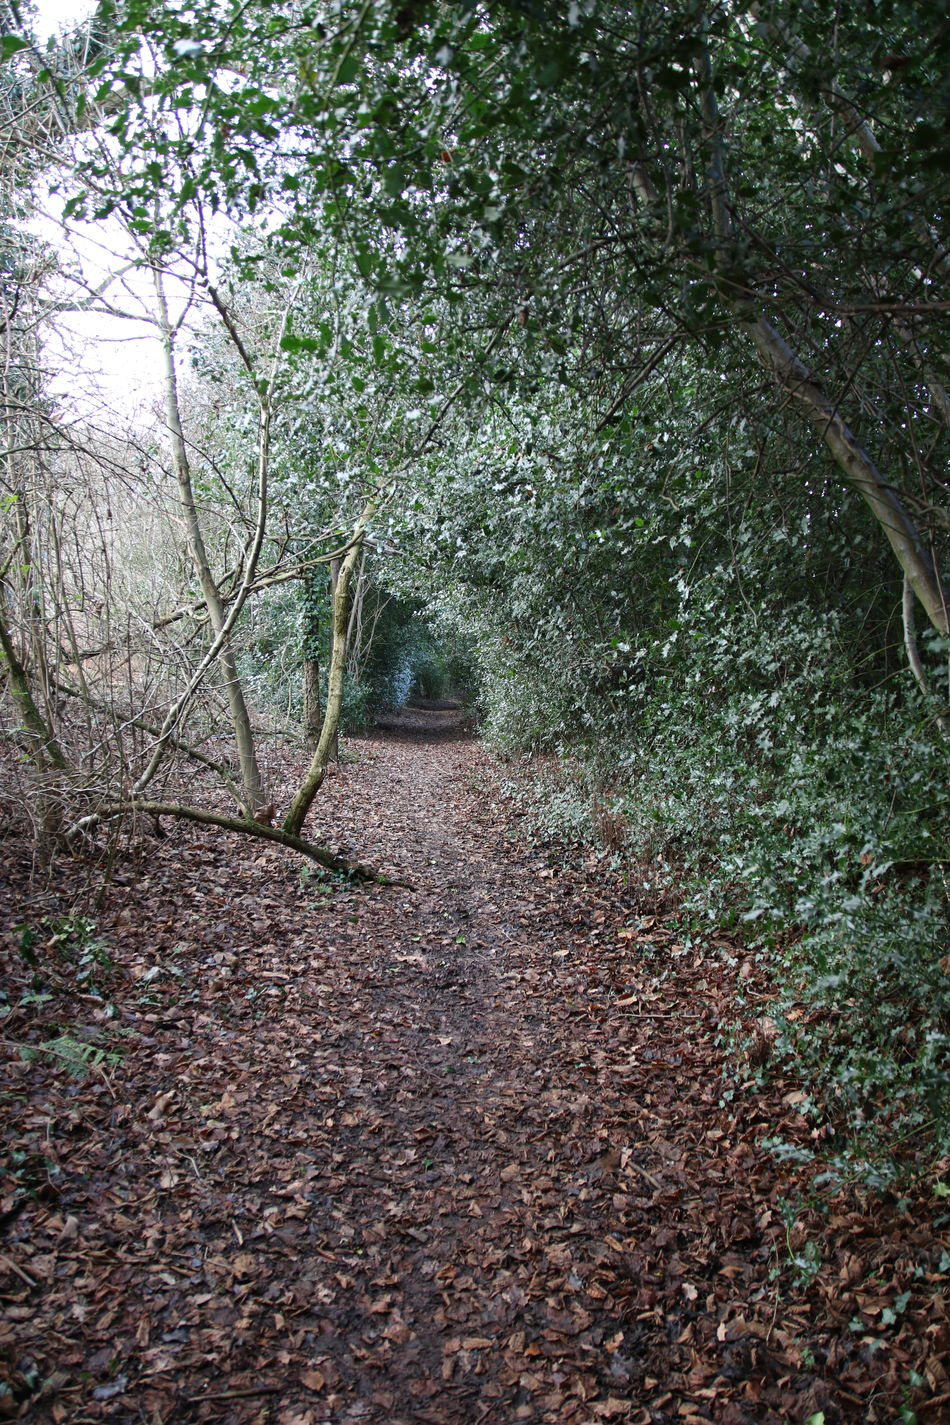 Backgrounds Beauty In Nature Bridleway Close-up Countryside Day Footpath Leaves Nature No People Outdoors Sky Surrey Countryside Track Tree Walking